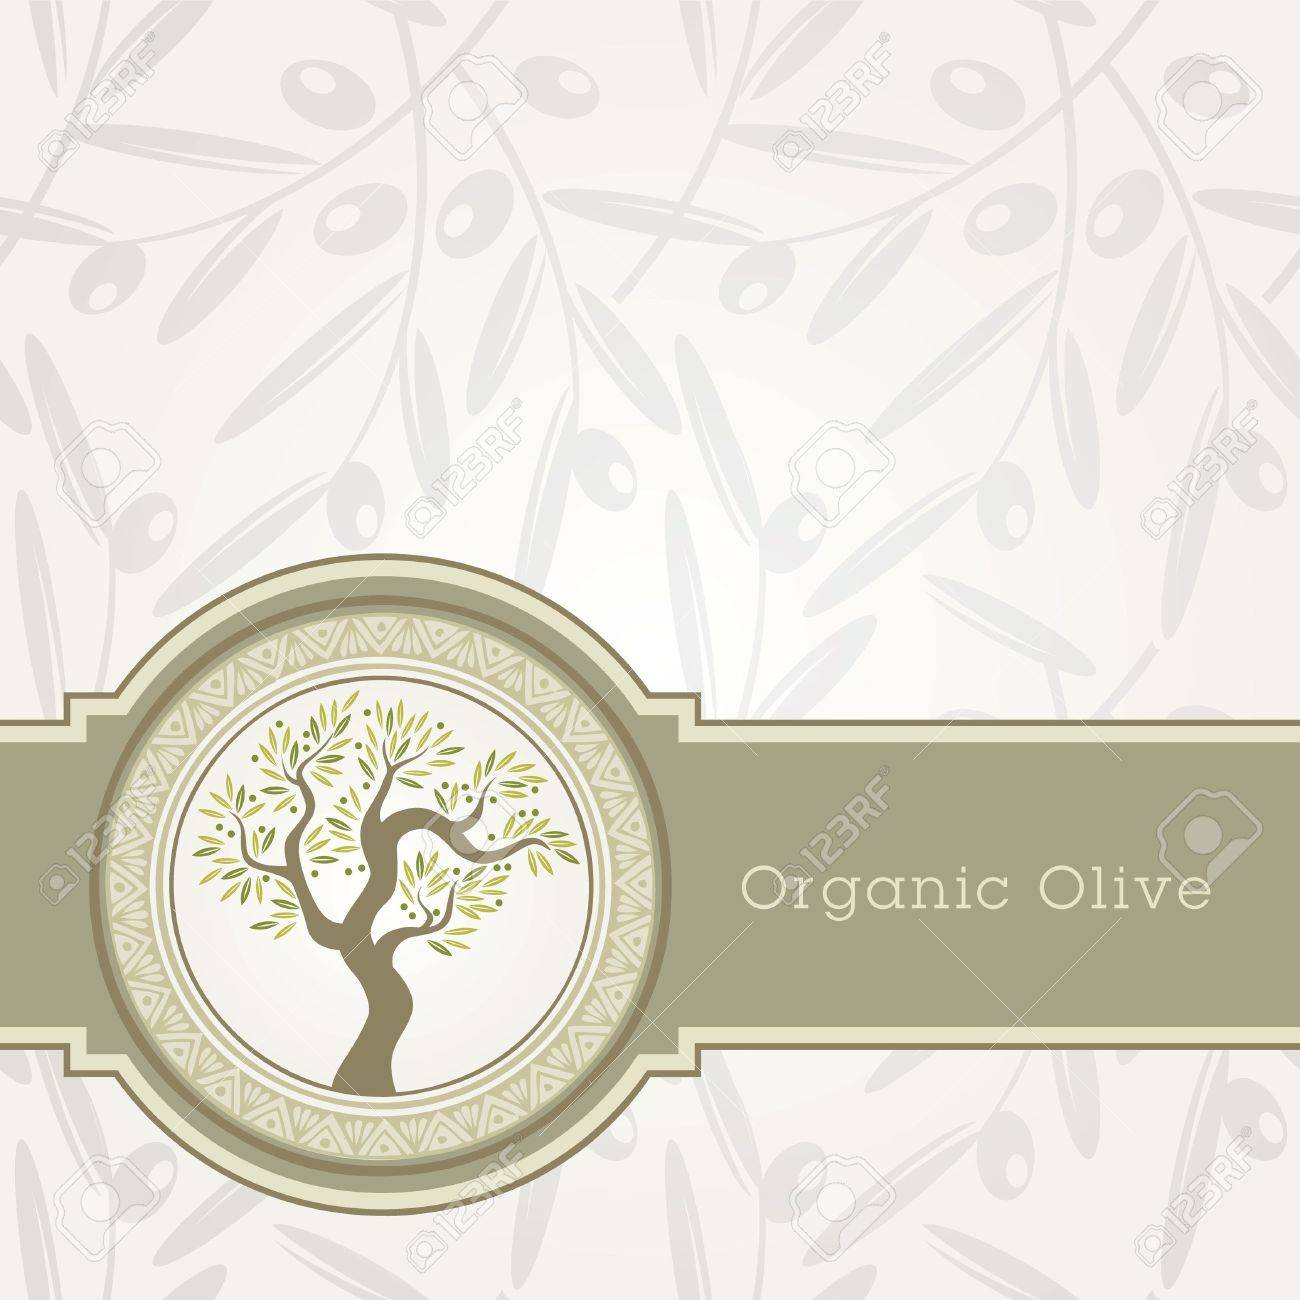 Olive oil label template - 10438794